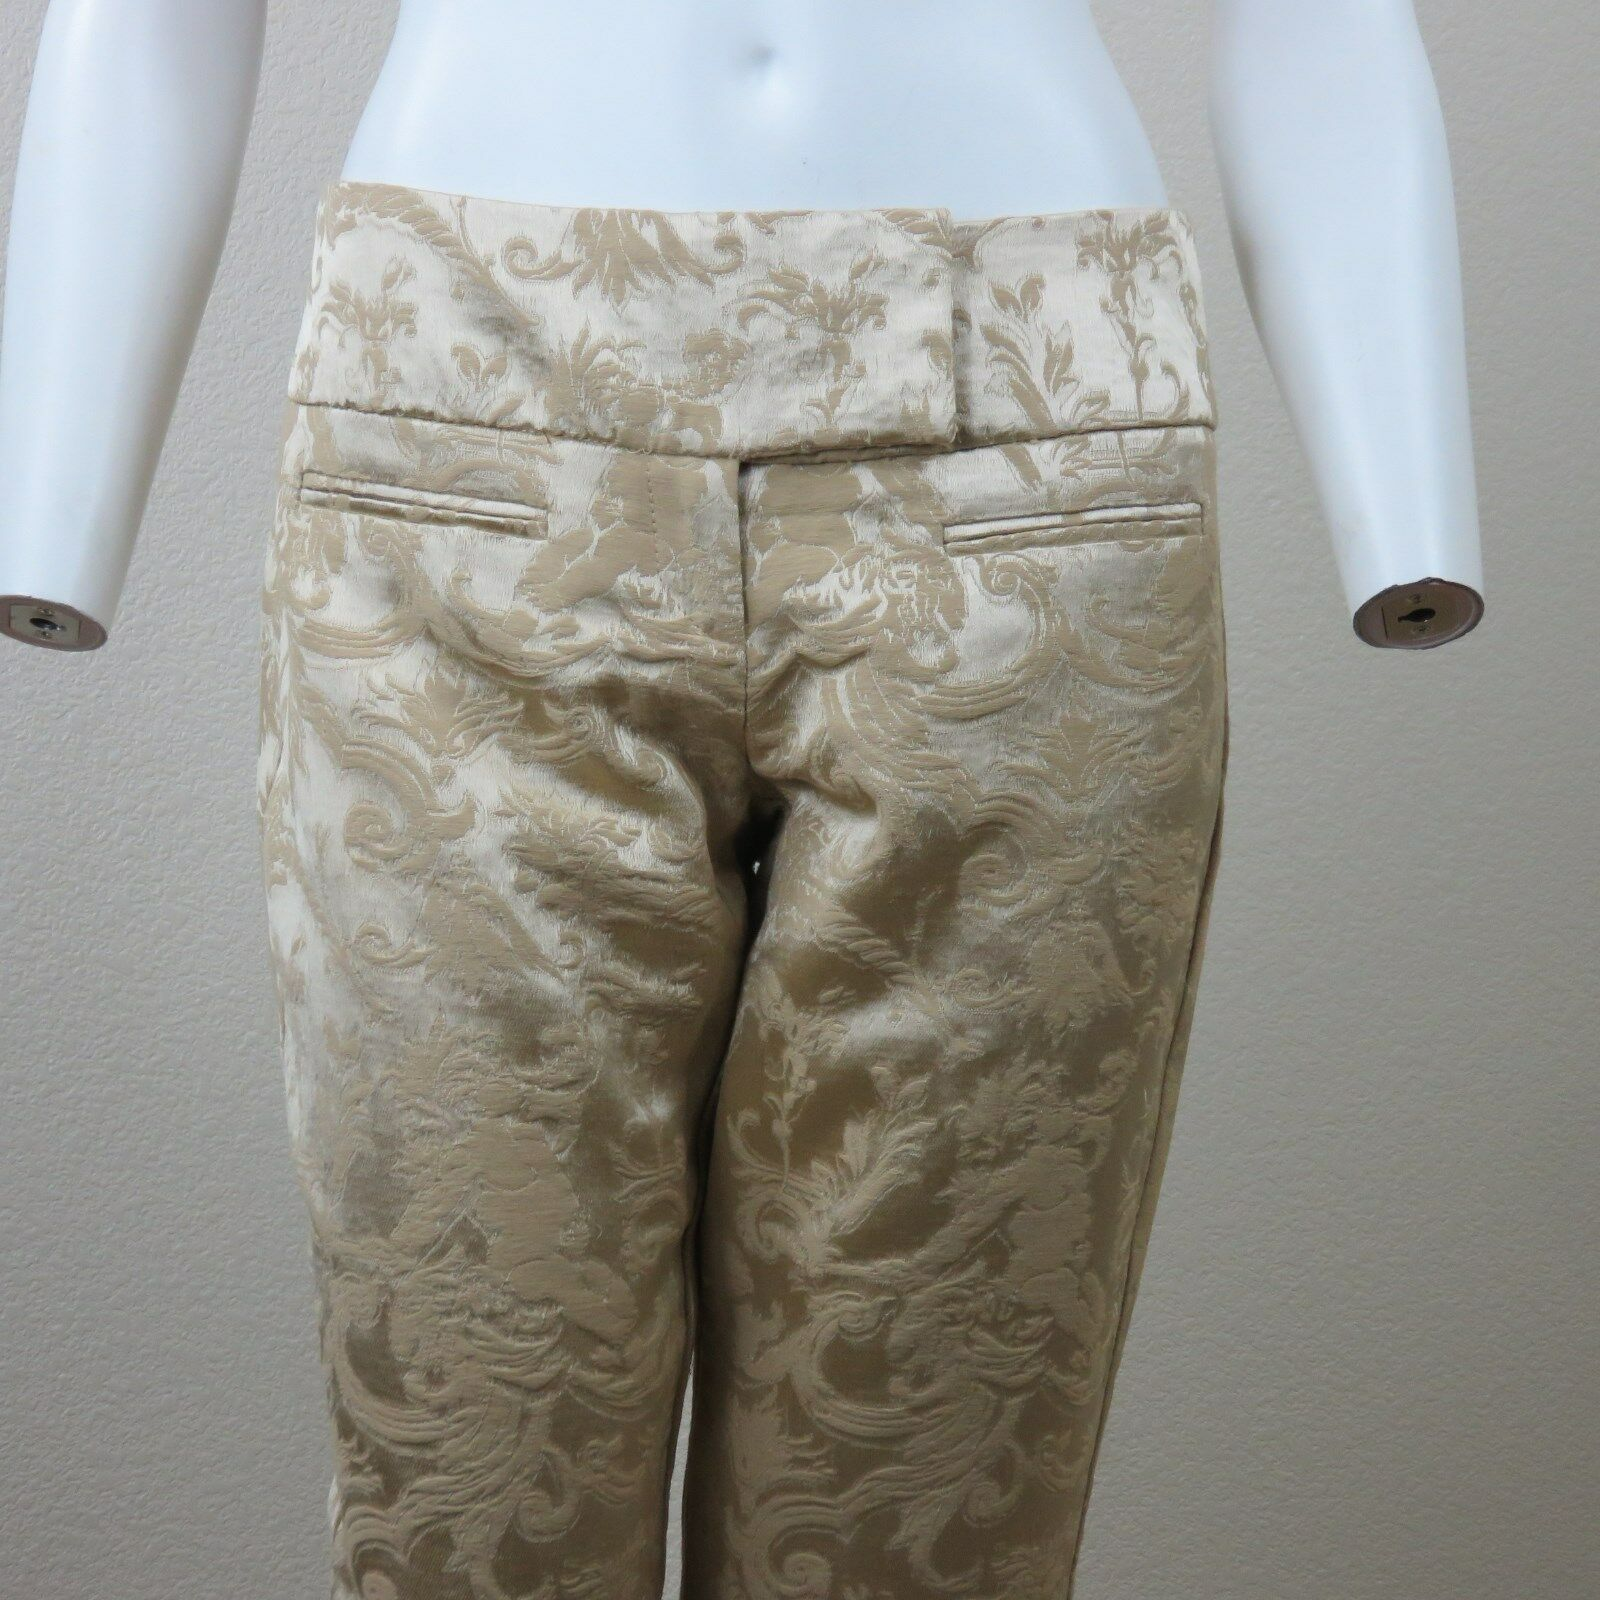 Caché gold Brocade Pants Size 4 Mid Rise Flat Front Boot Cut Made in USA